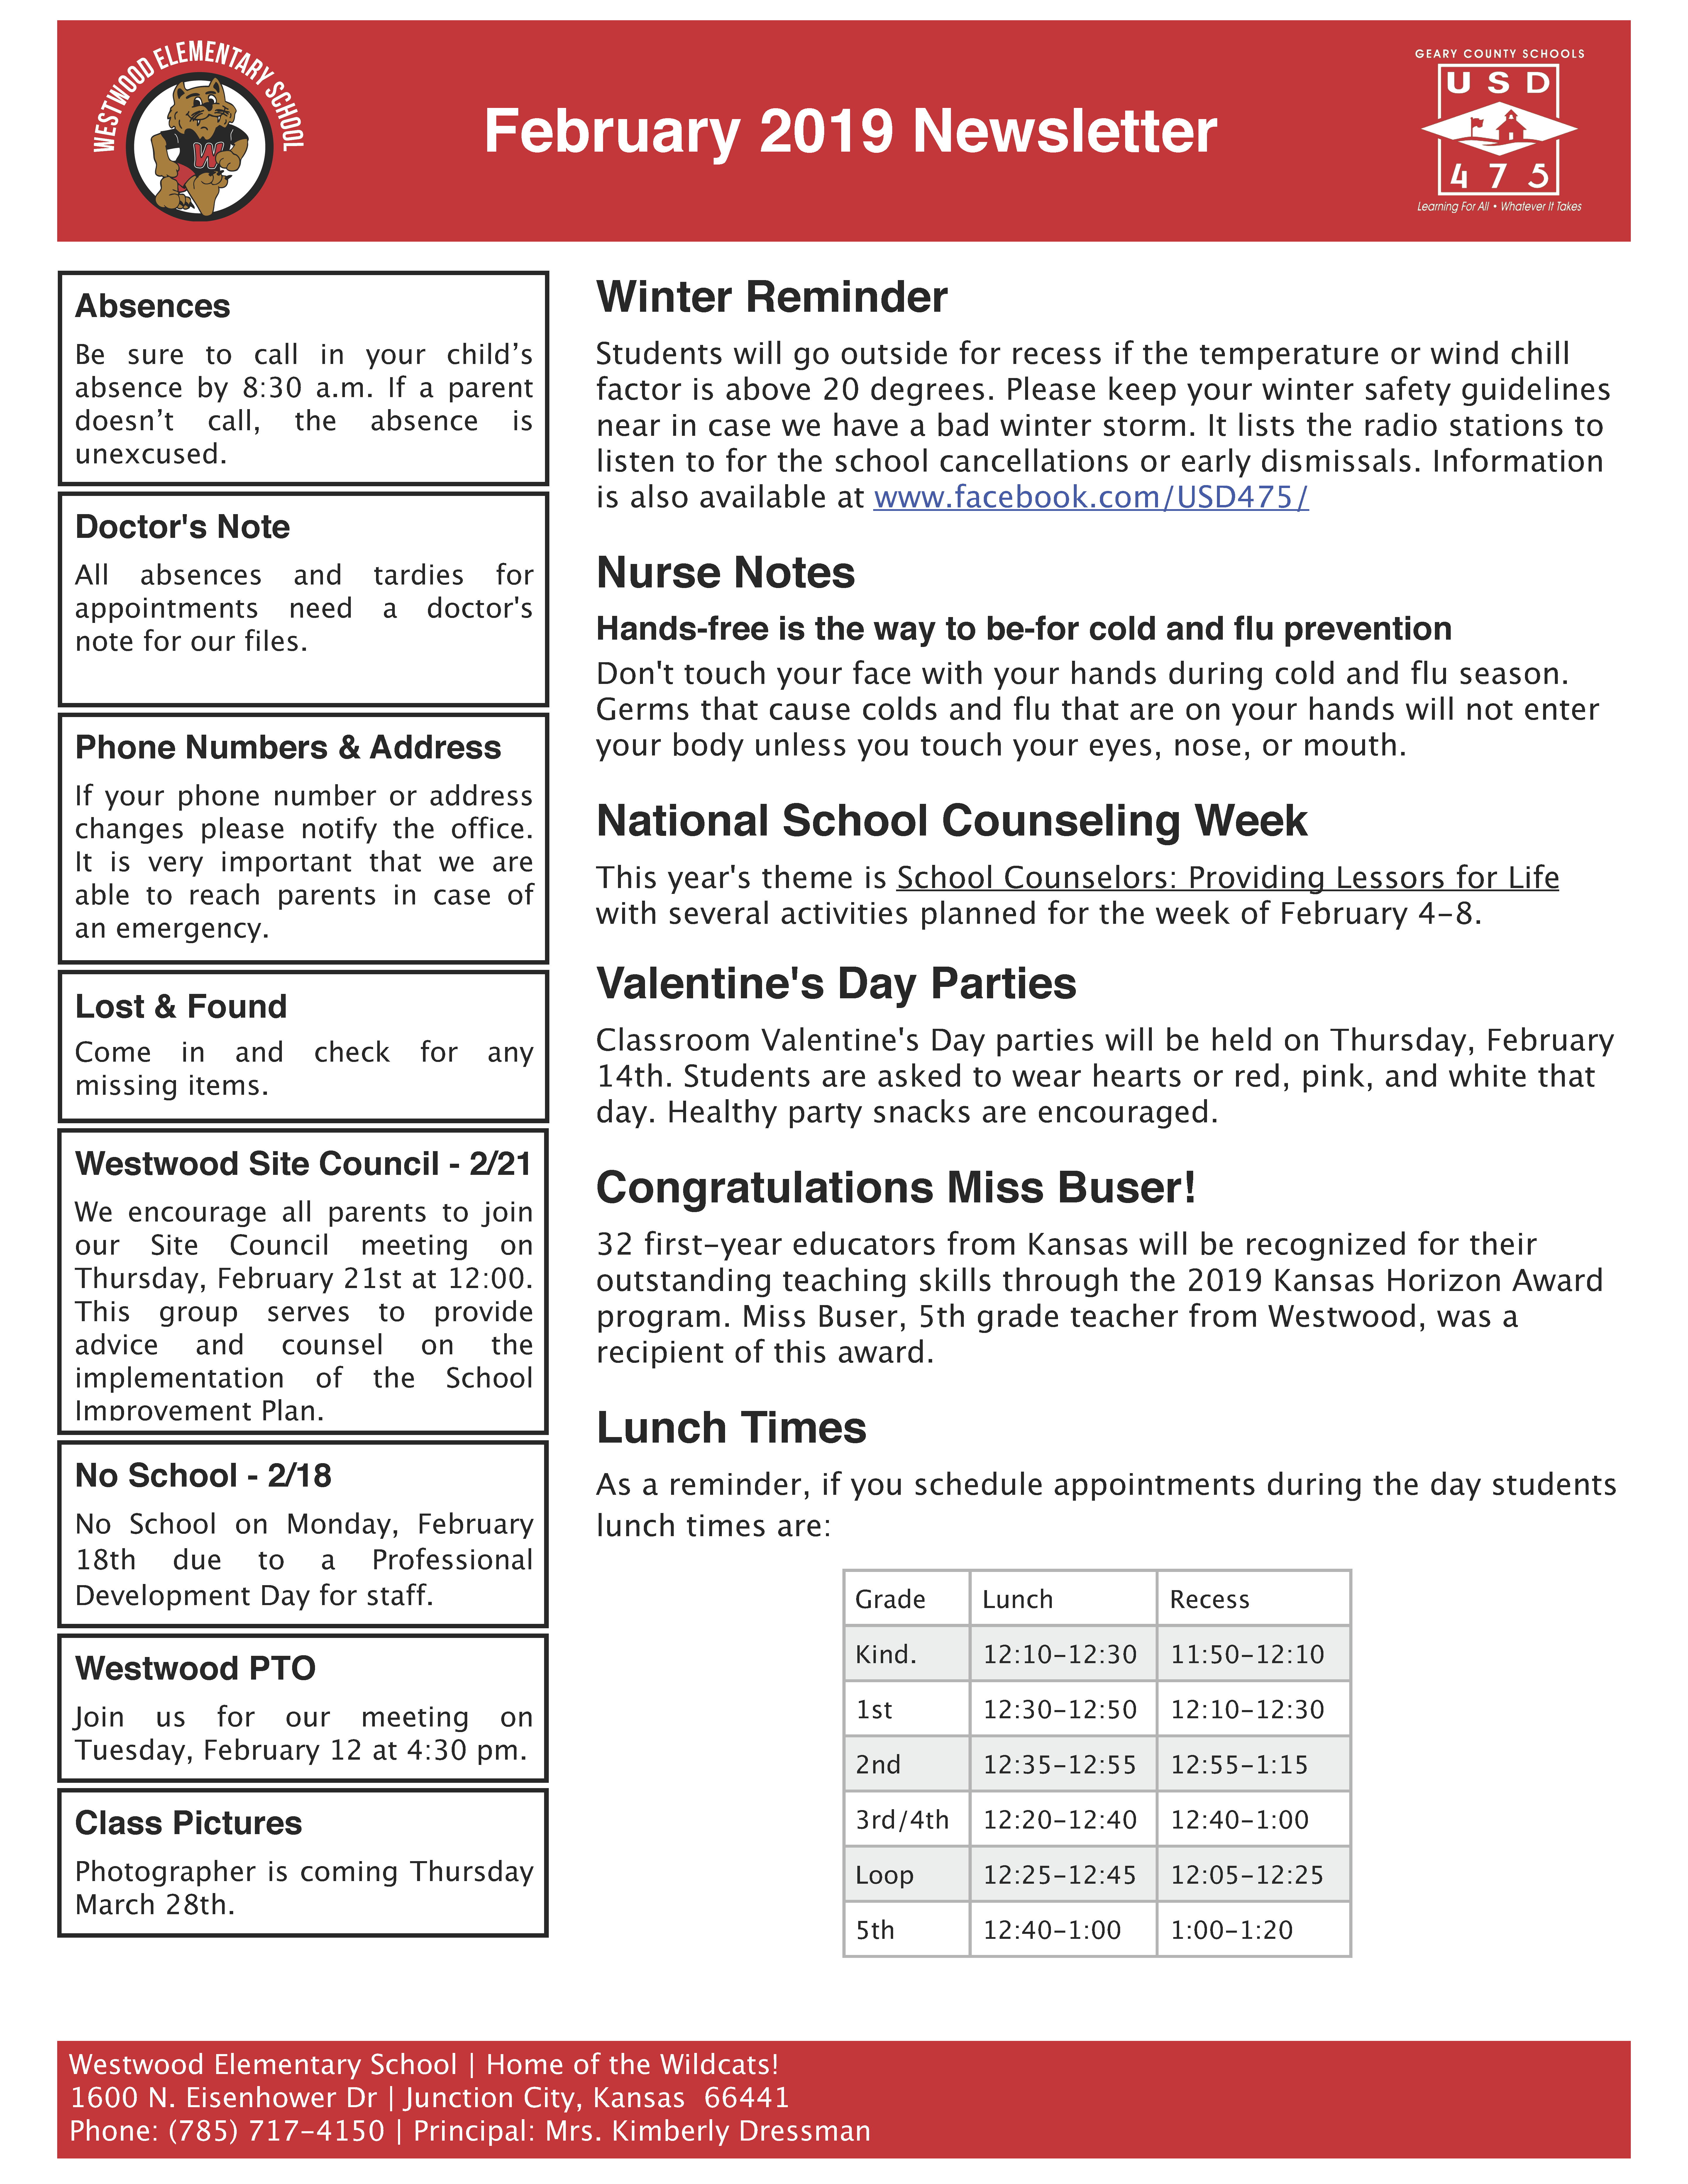 Picture of Westwood Elementary's February 2019 Newsletter